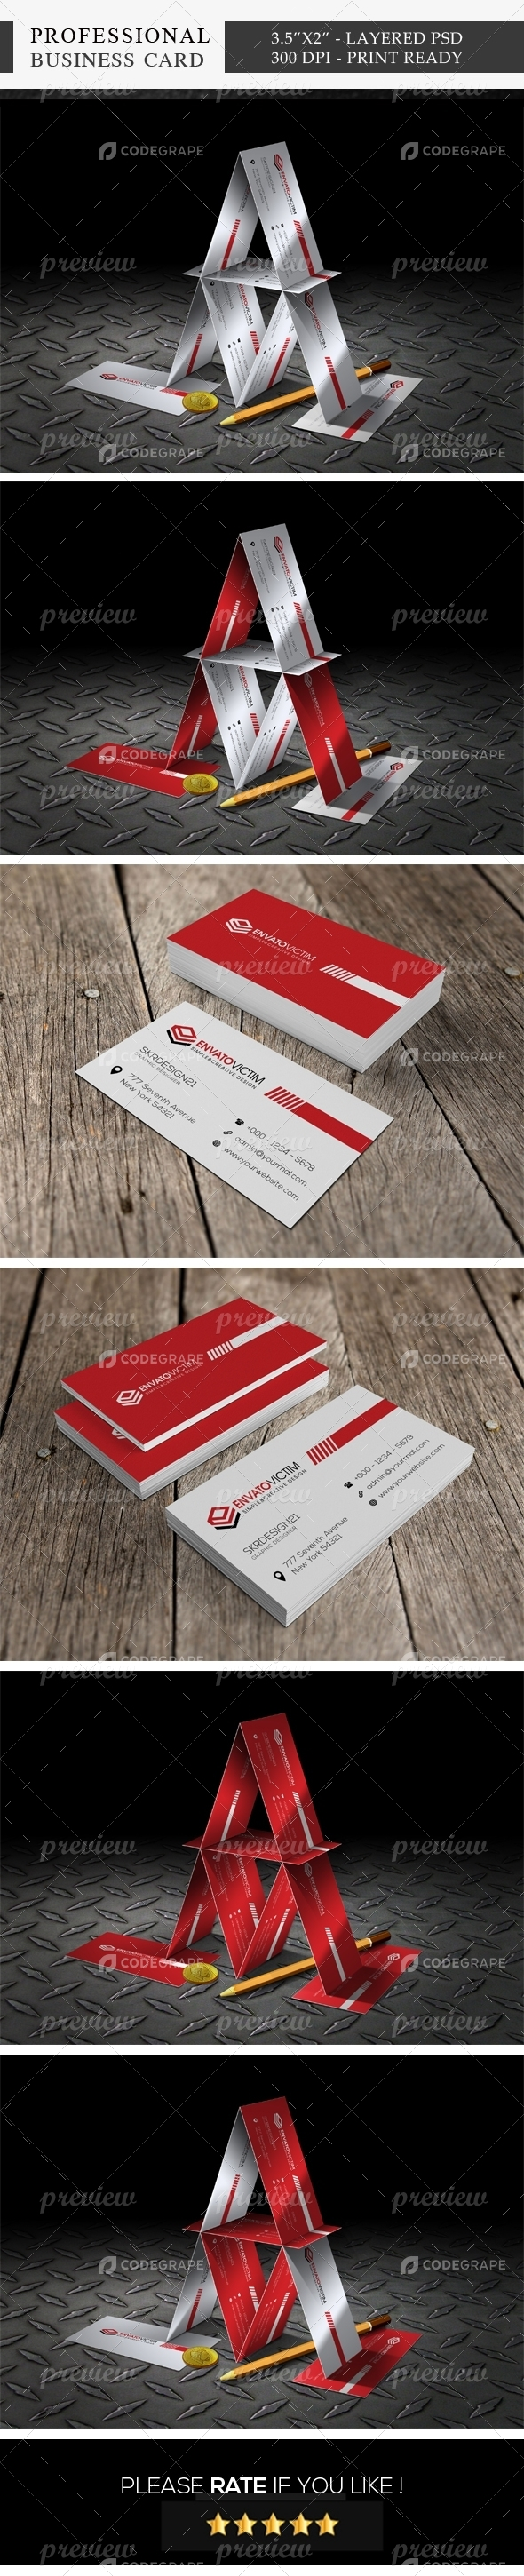 Professional Business Card 04